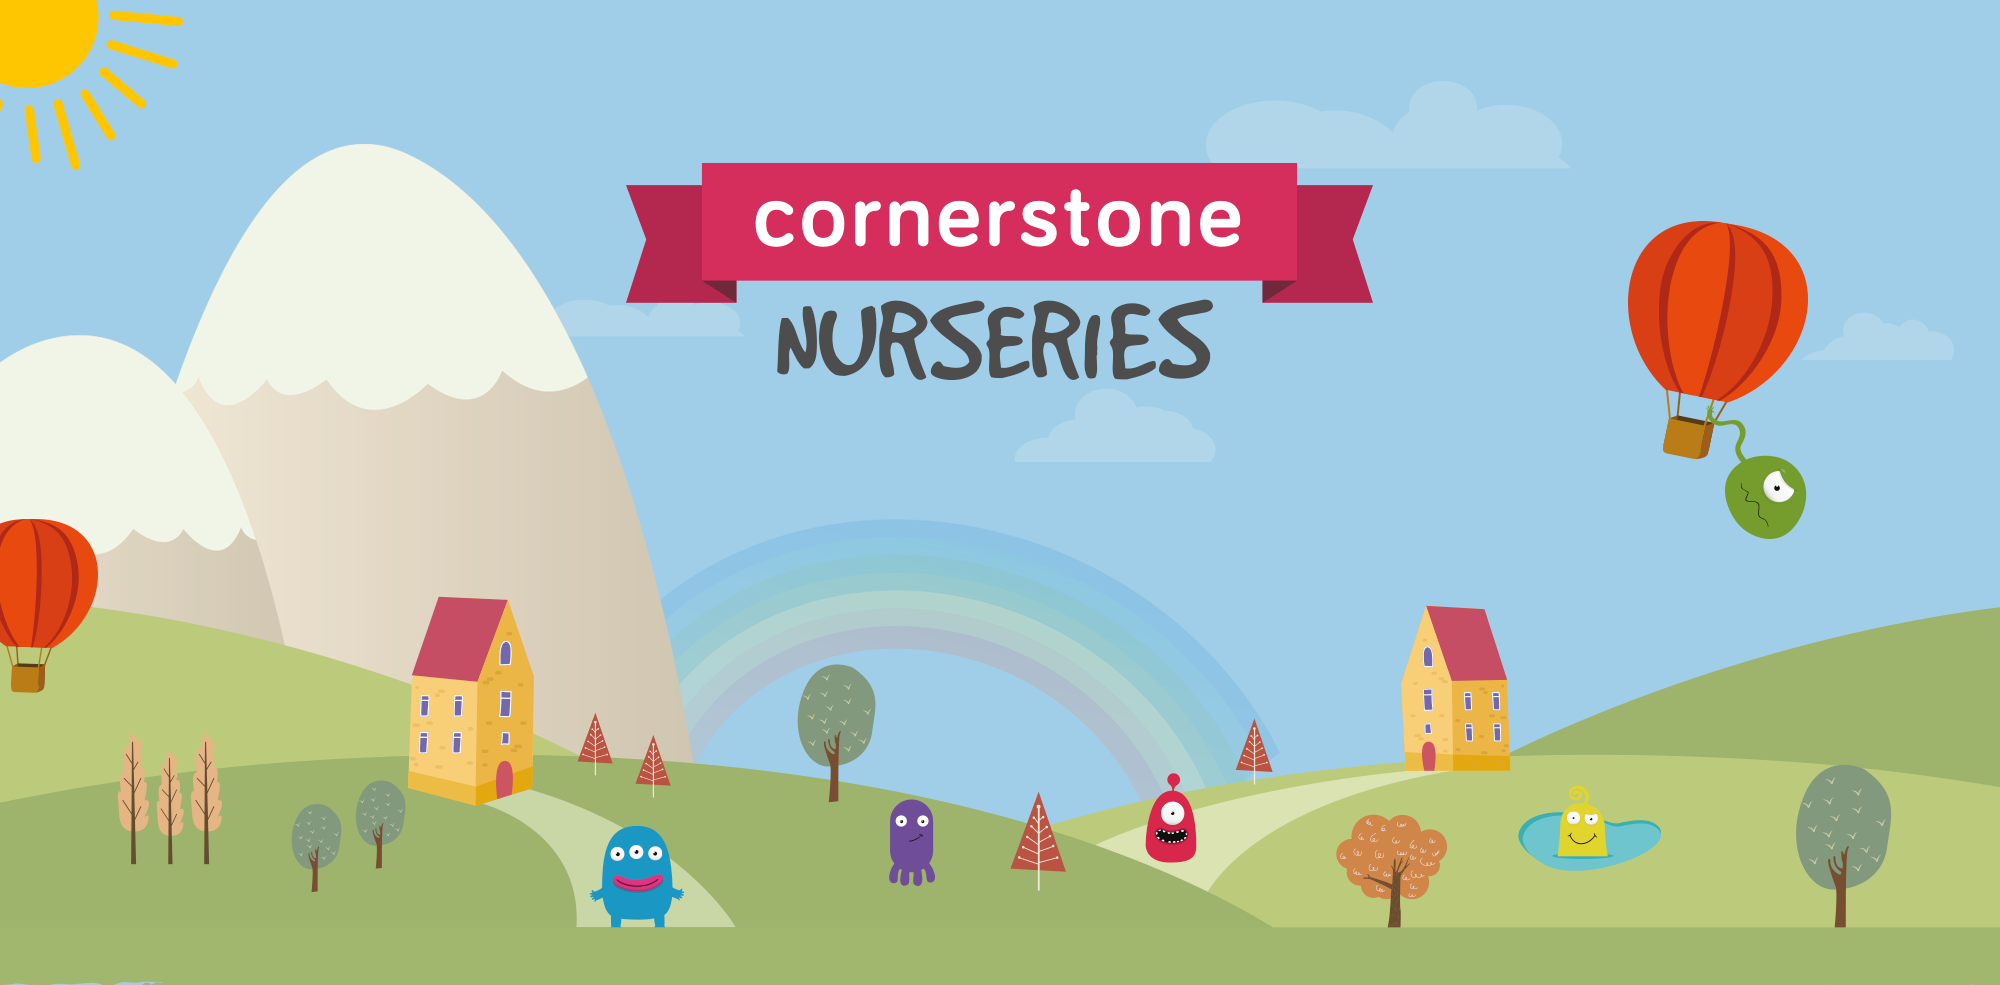 Cornerstone Nurseries cornerstone main1